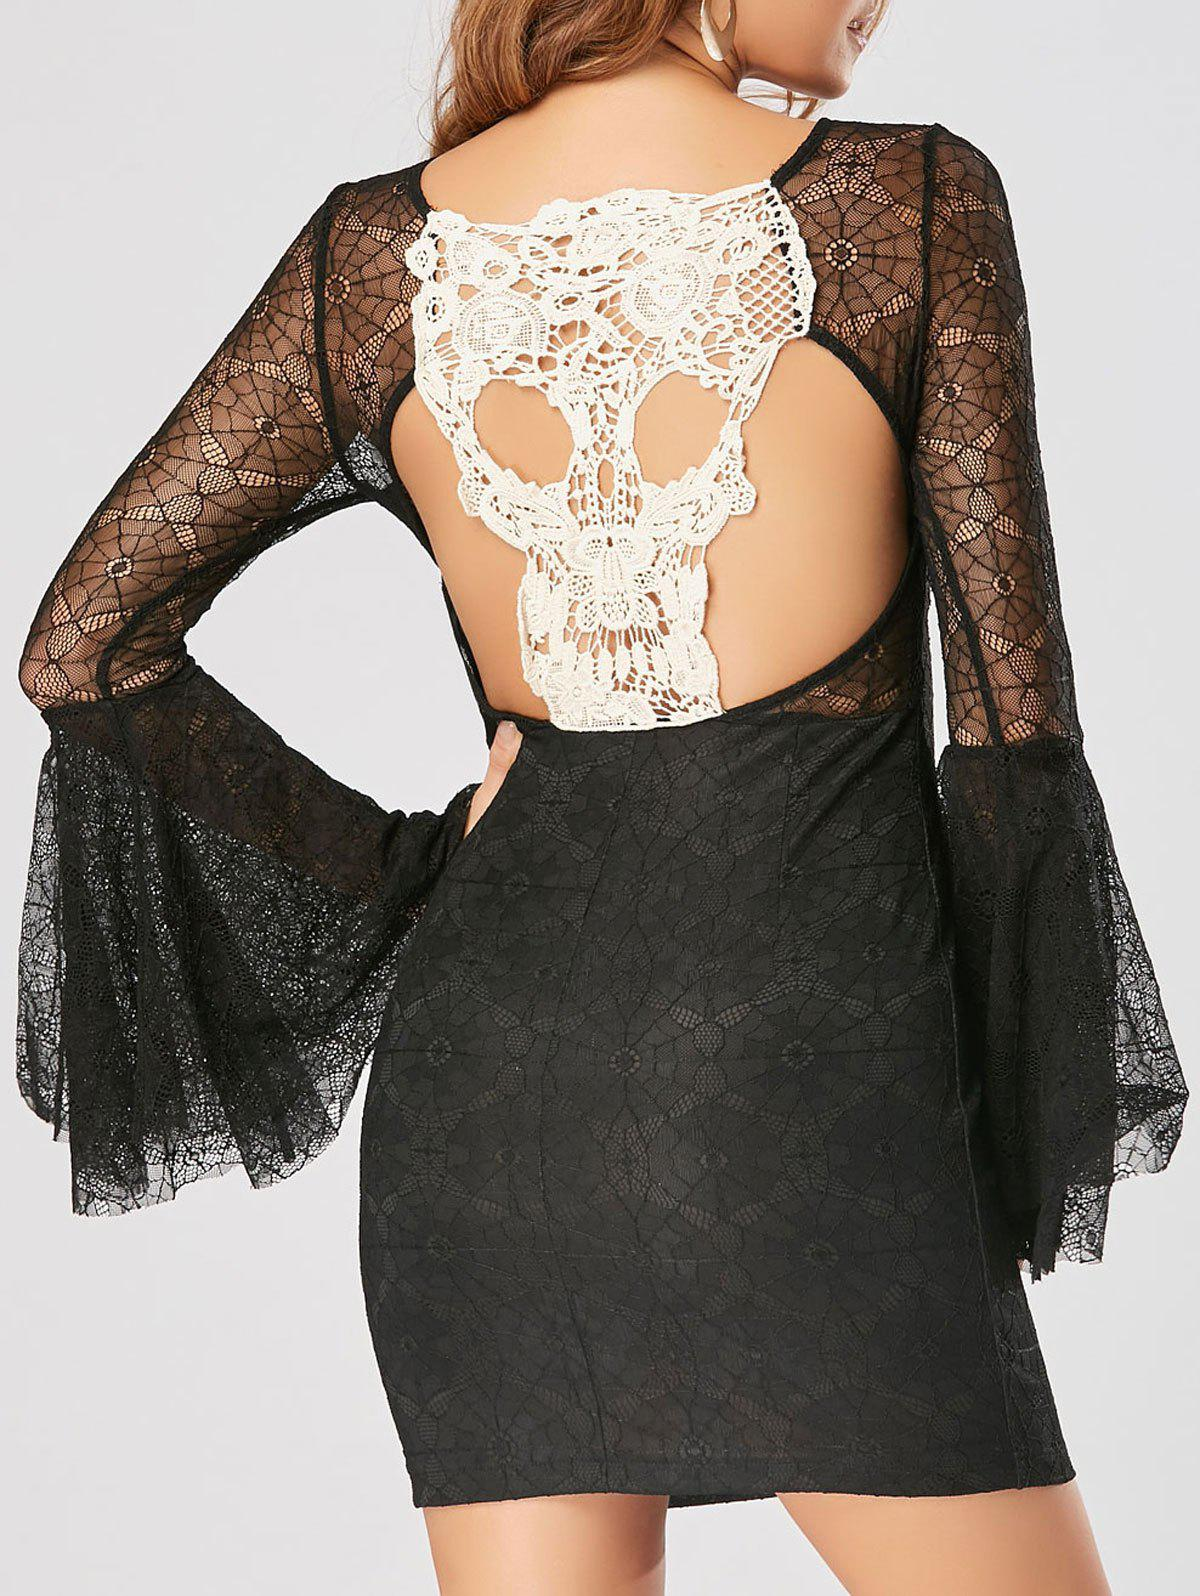 Skull Cut Out Lace Mini Bodycon Dress - BLACK M